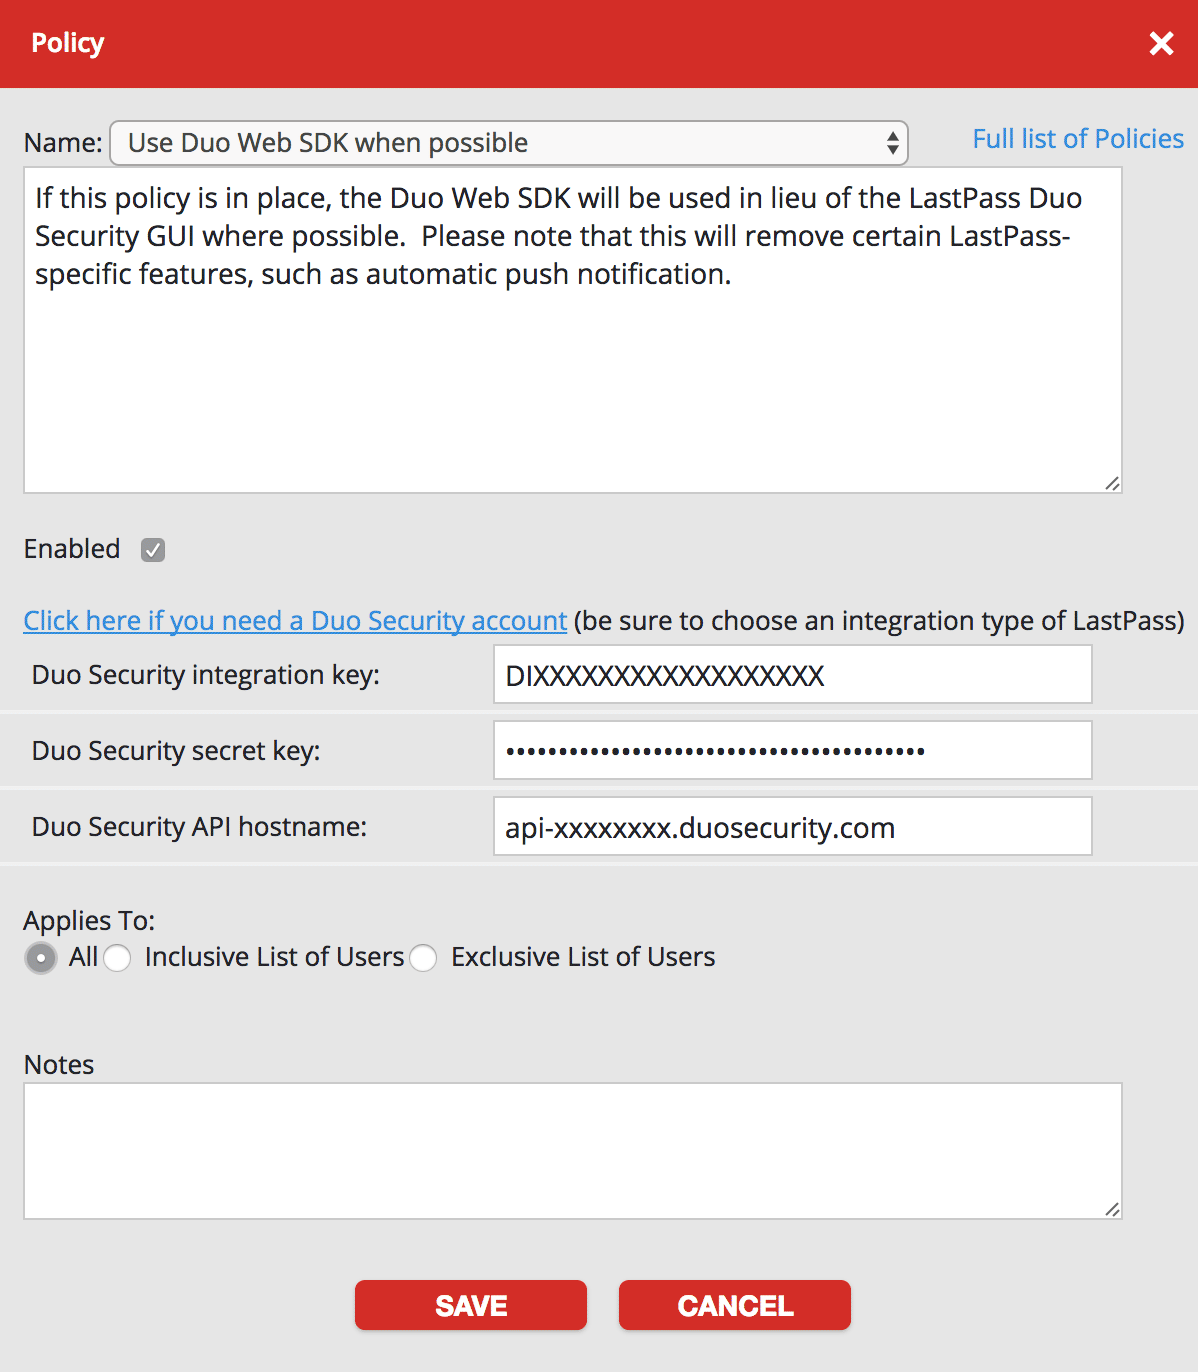 LastPass Duo Web SDK Policy